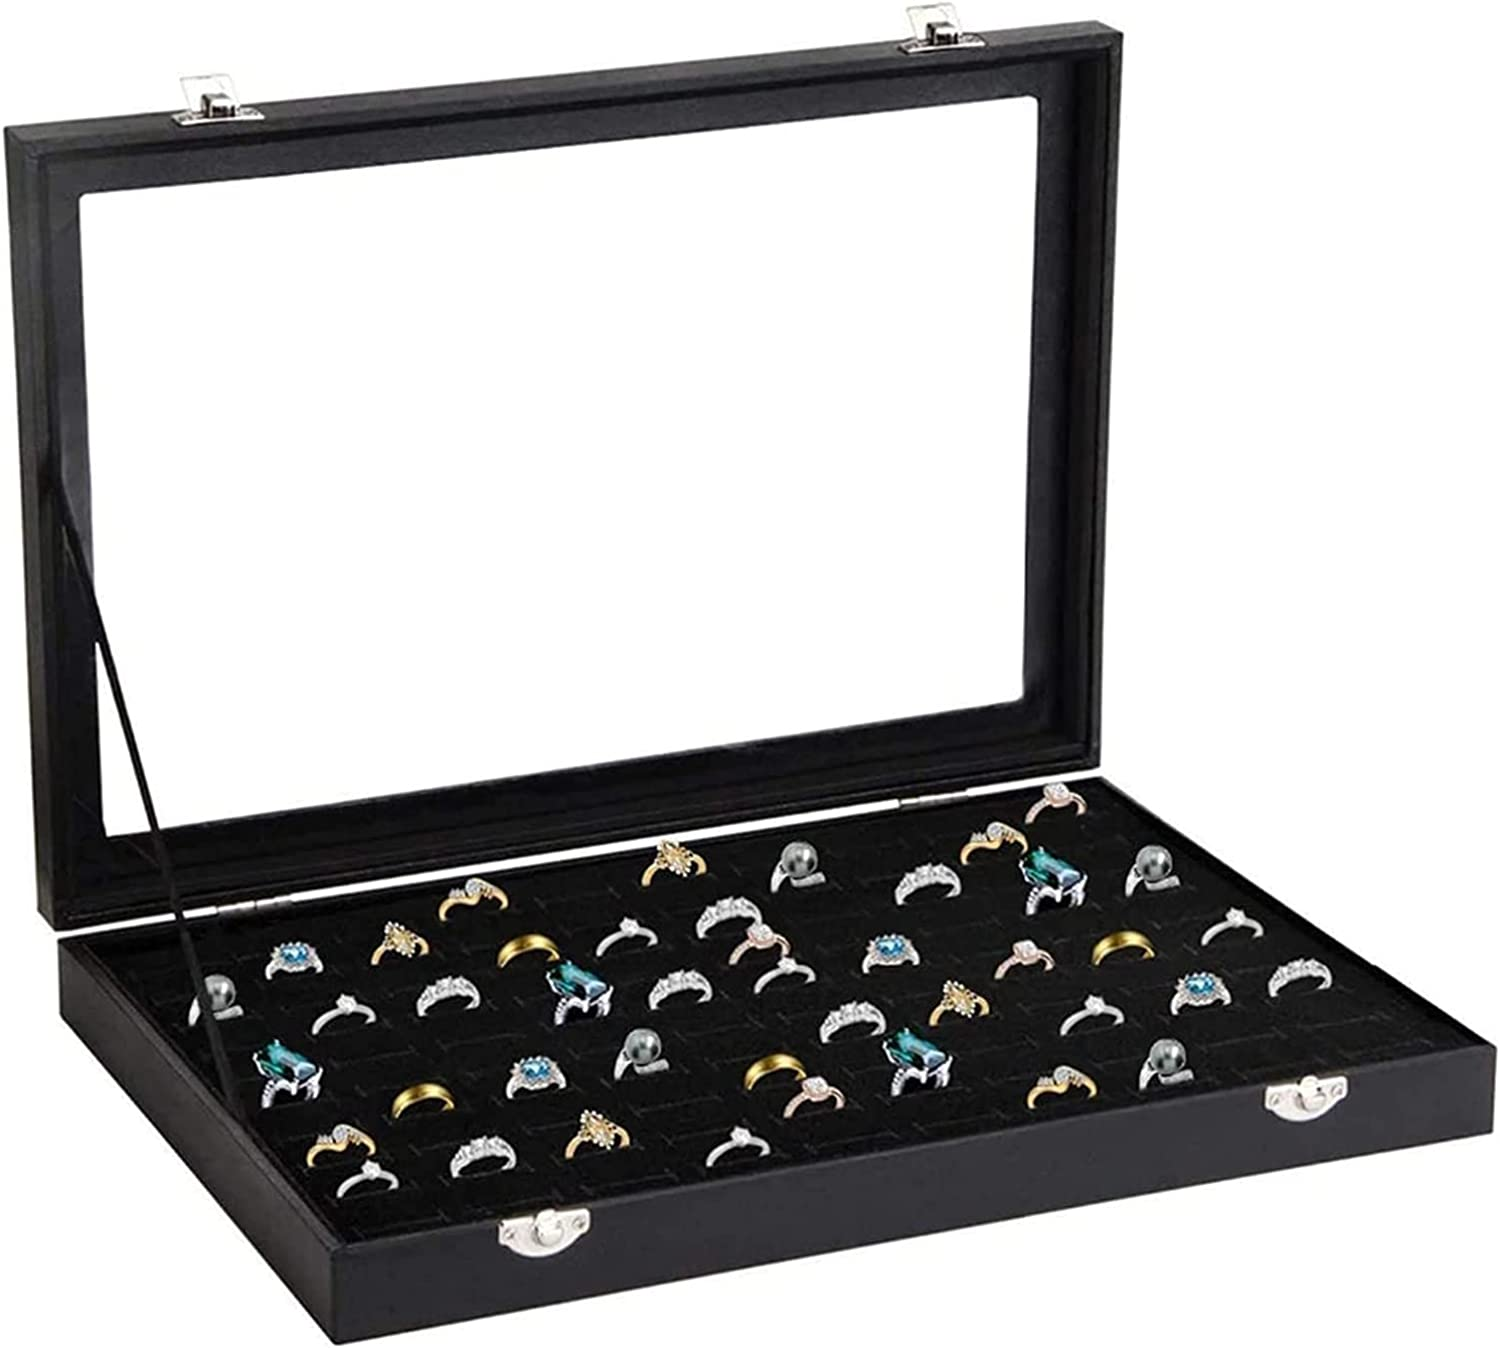 SETSCZY Velvet Max 58% OFF Display Box Great interest with Ring Orga 100 Earring Slot